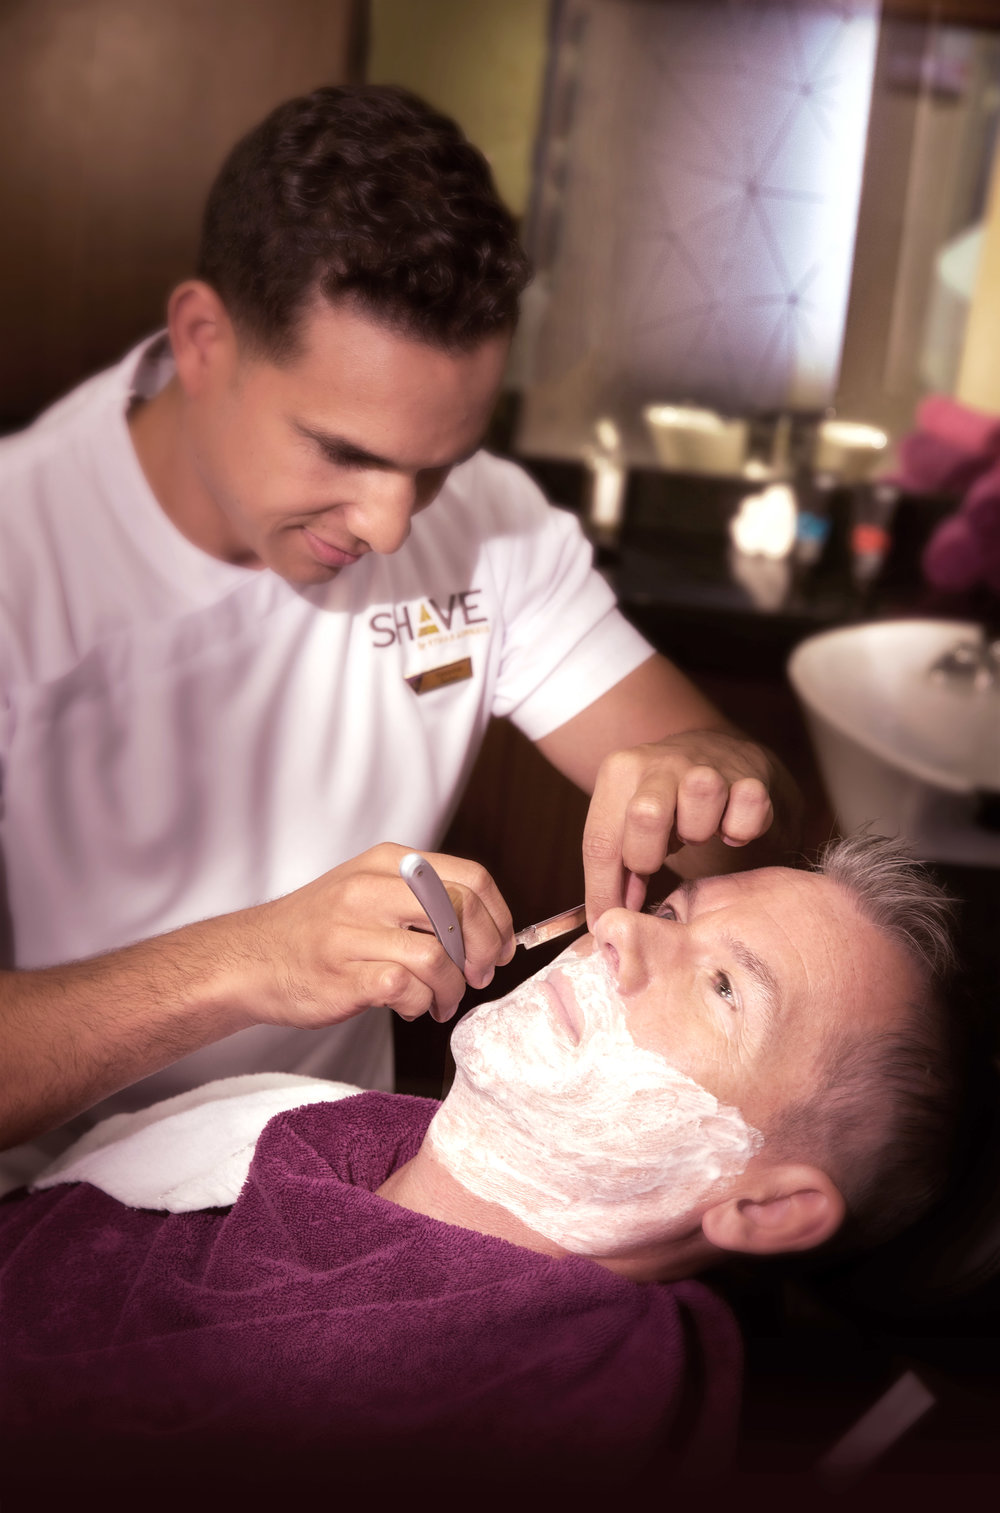 Etihad Style & Shave at the First Class Lounge & Spa in Abu Dhabi. Image supplied.